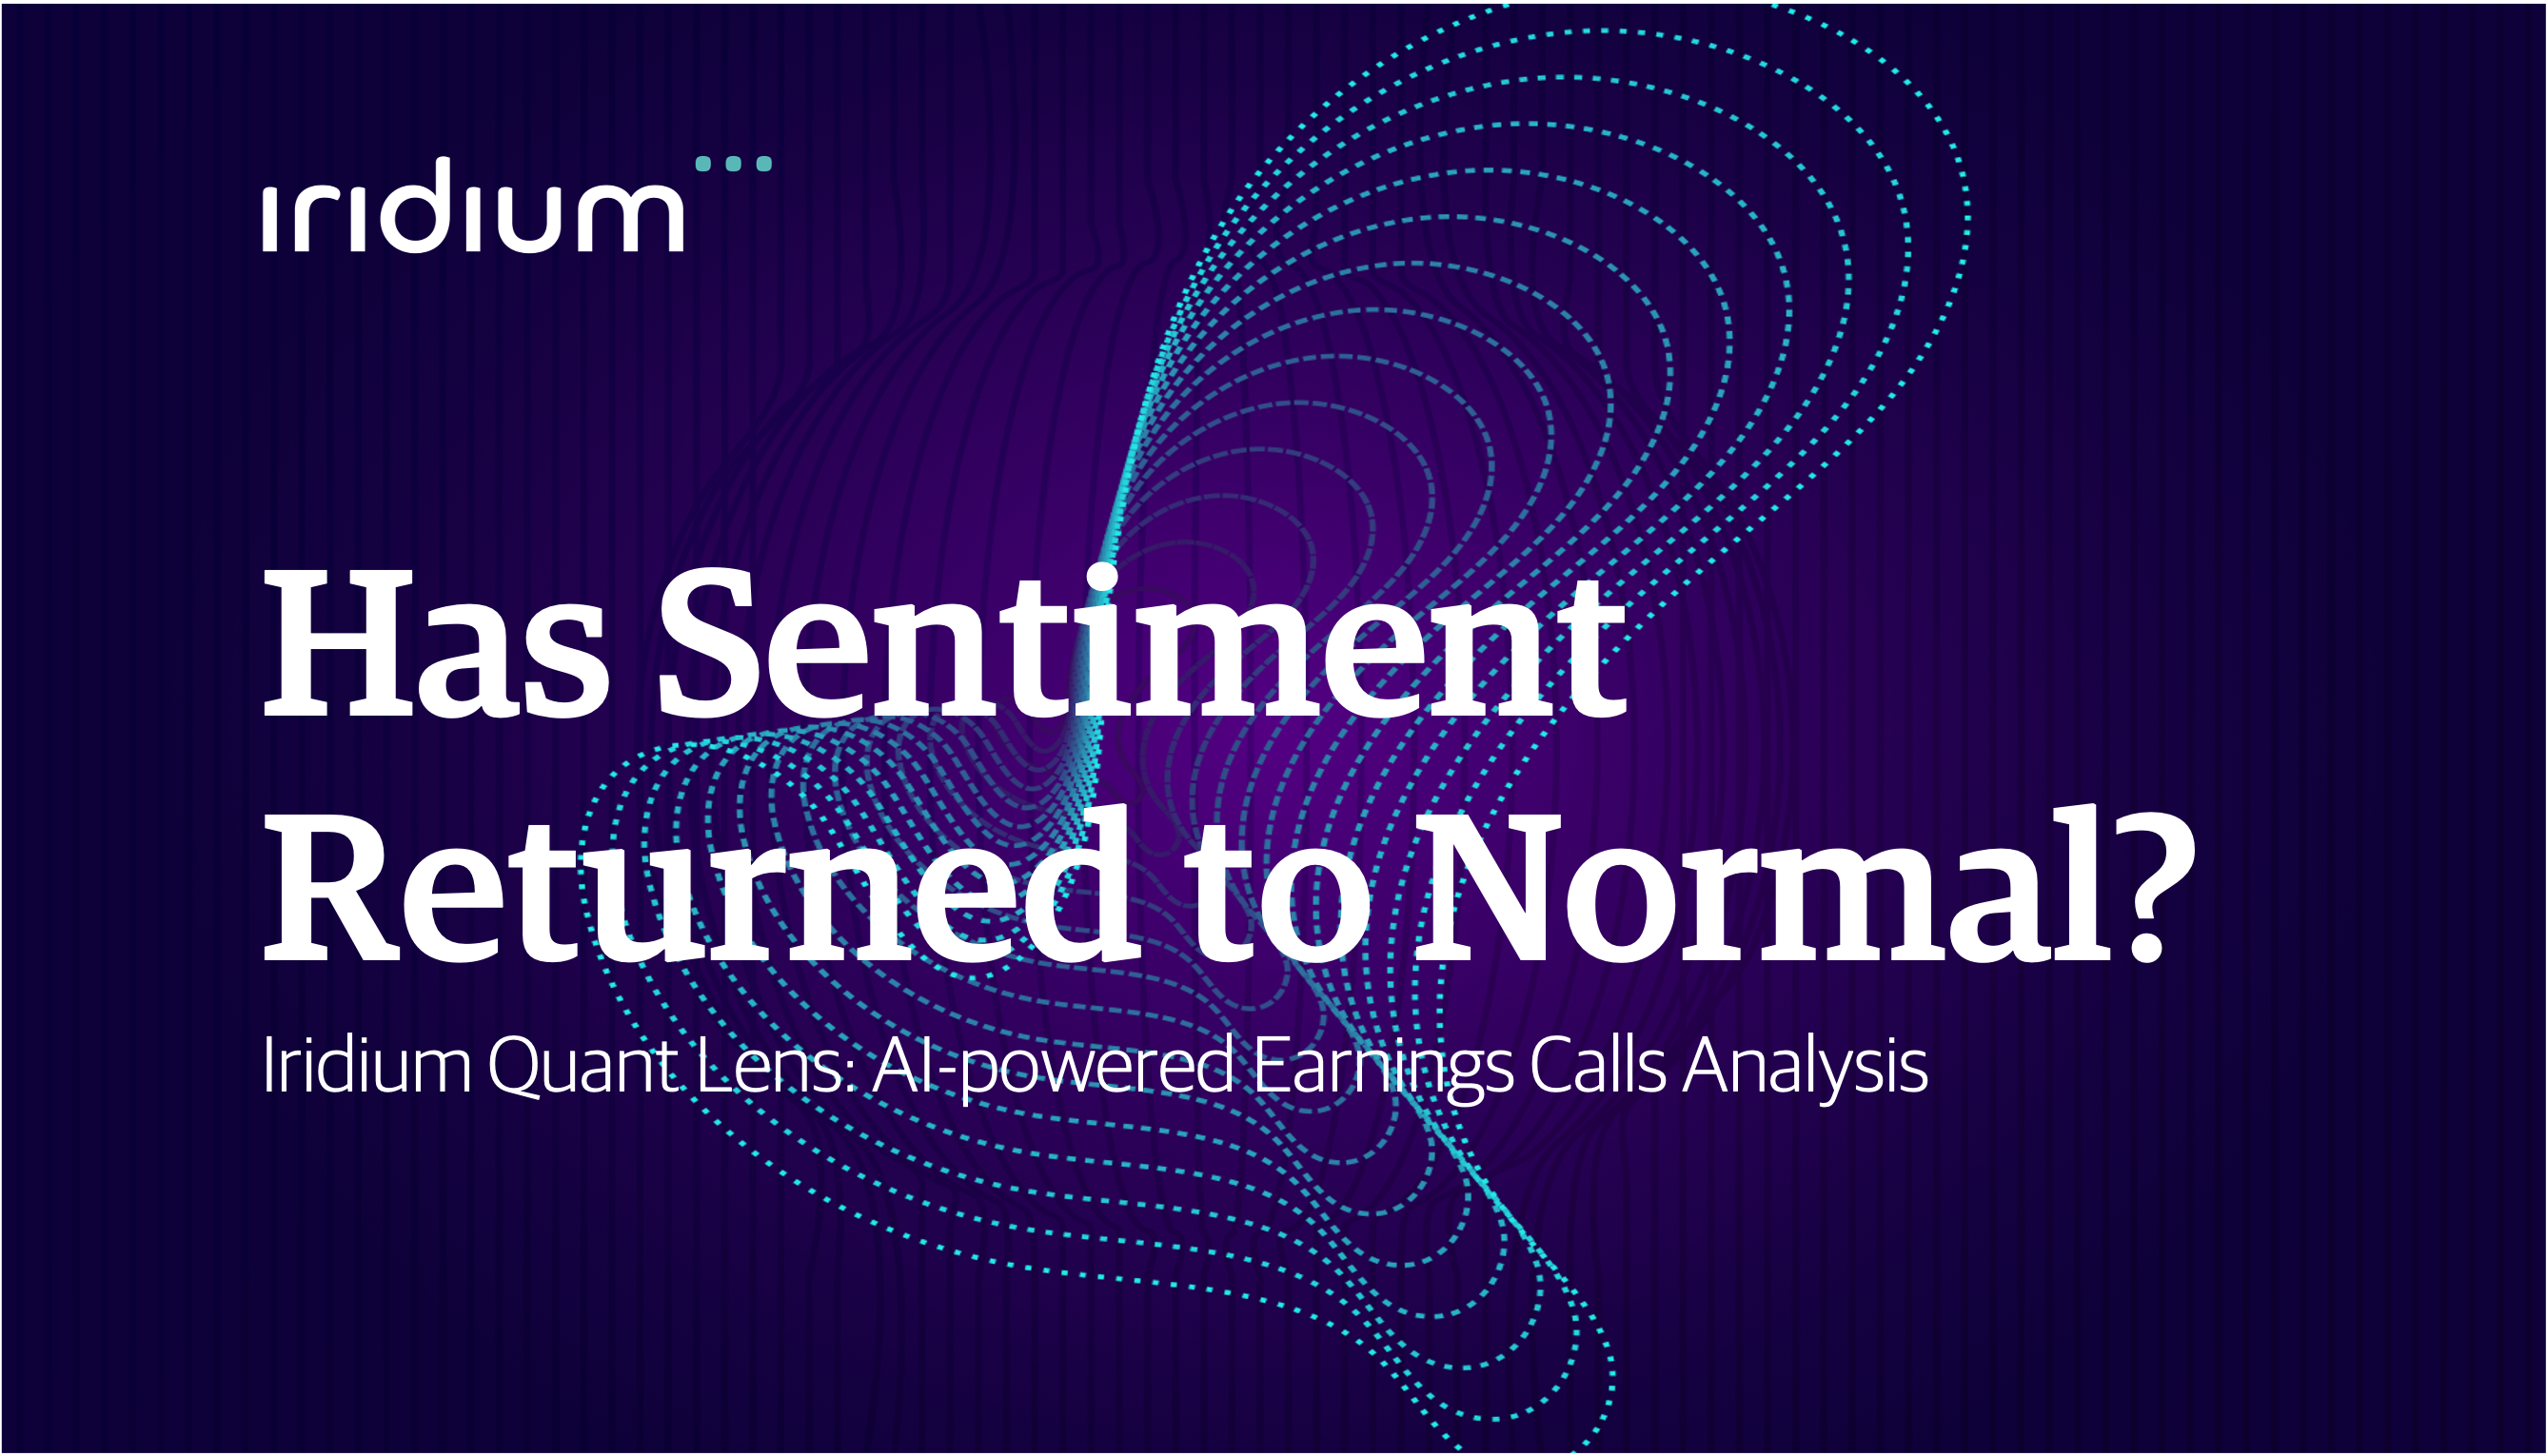 Has Sentiment Returned to Normal?